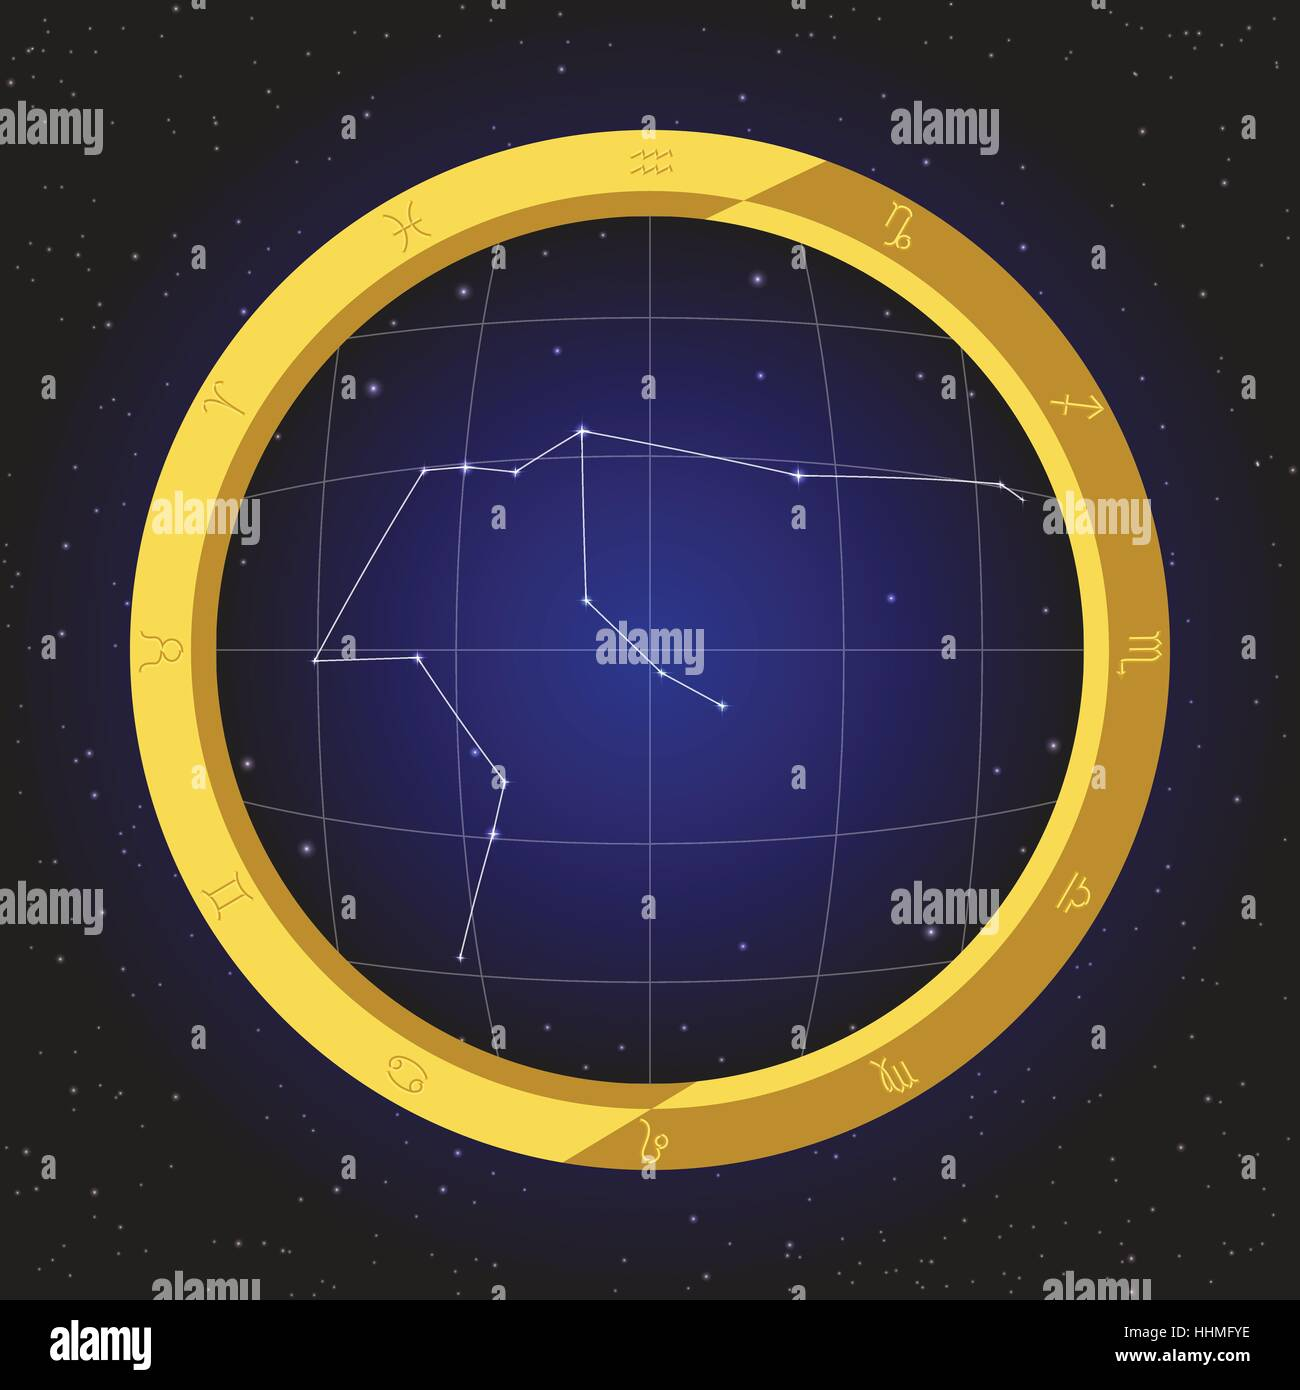 aquarius star horoscope zodiac in fish eye telescope golden ring frame with cosmos background - Stock Image